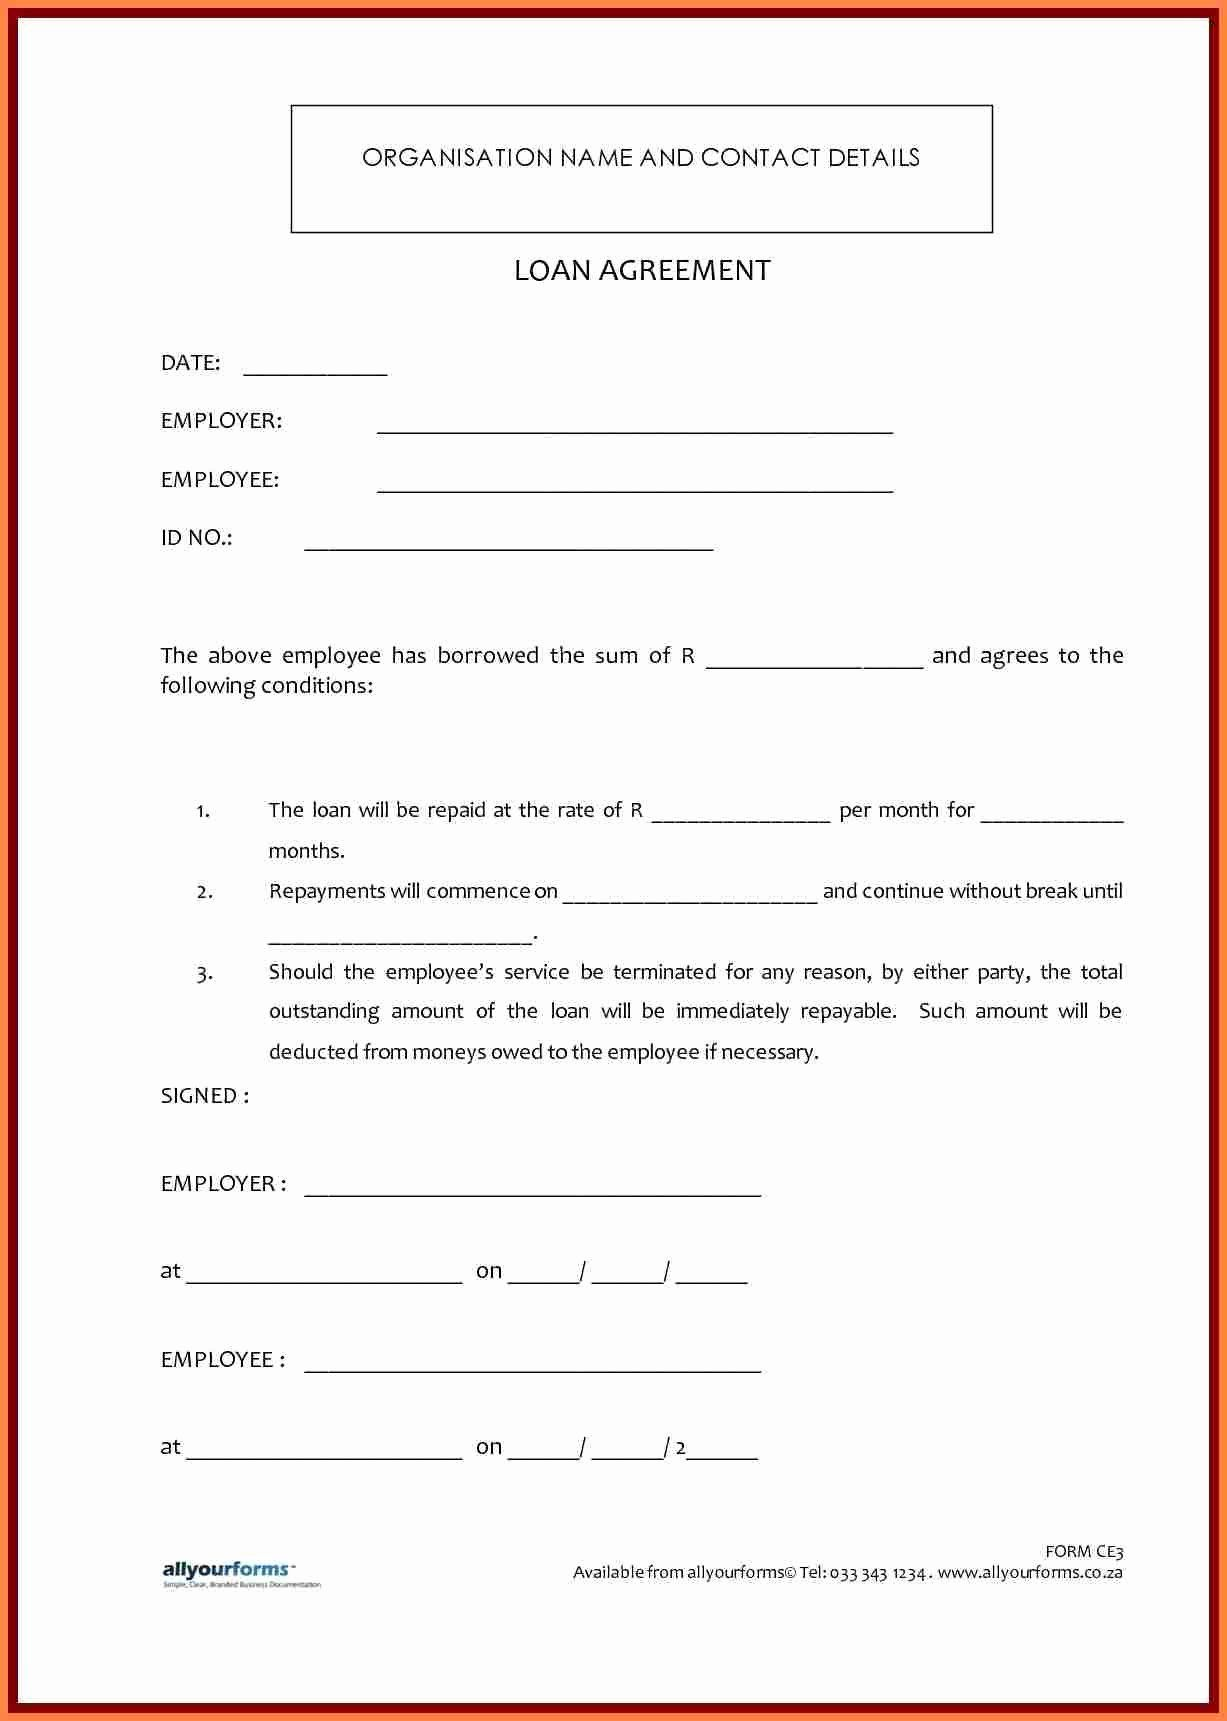 Loan Contract Template Free Beautiful Template Lending Money Agreement Template In 2020 Contract Template Personal Loans Loan Money